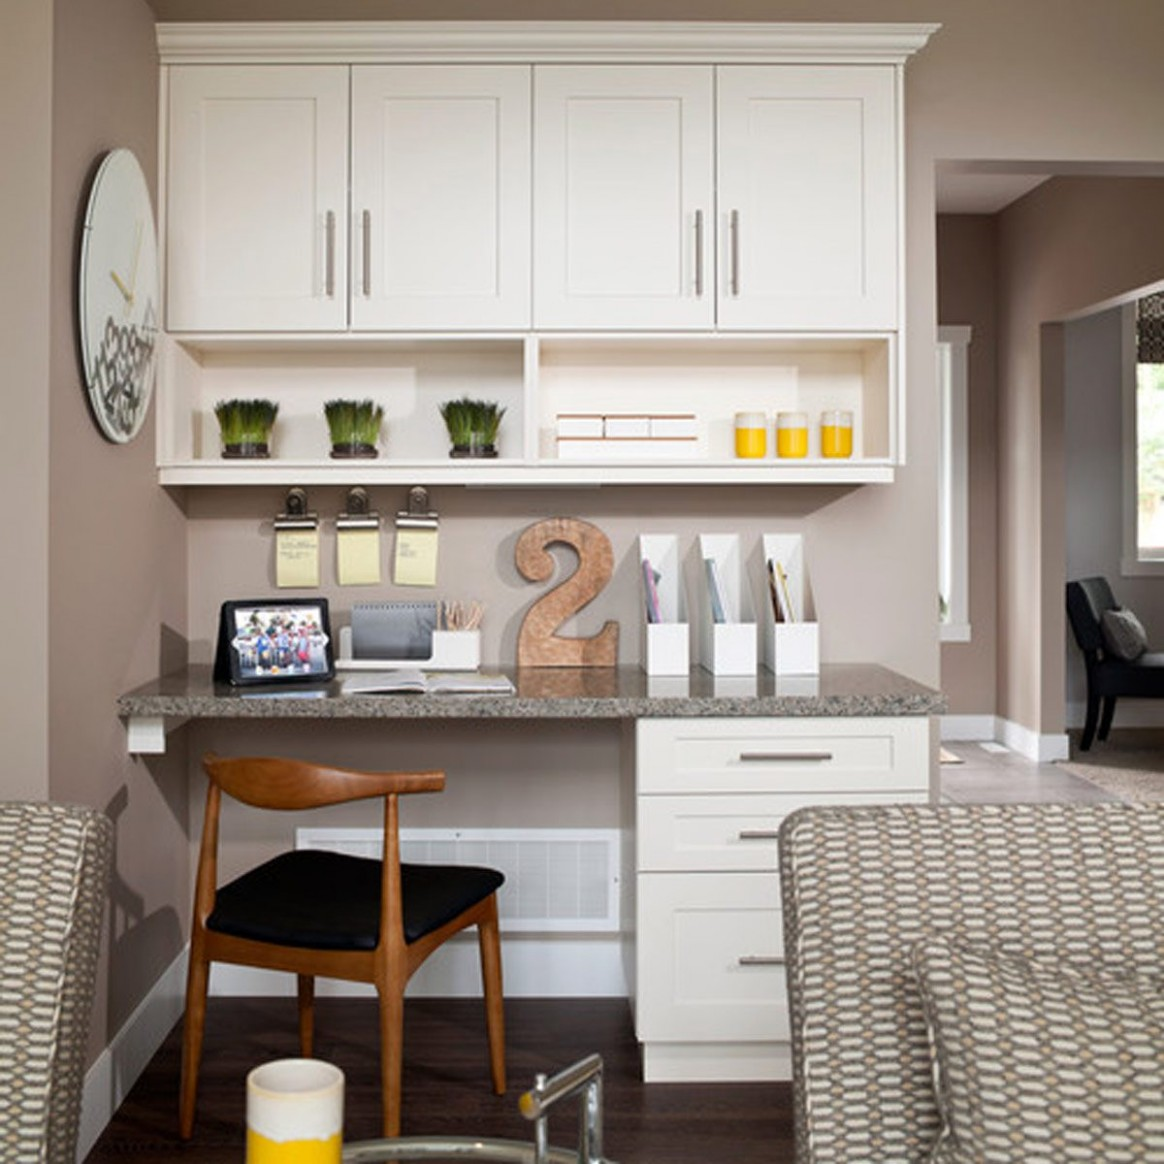 9 Ways to Reuse Your Old Kitchen Cabinets  Family Handyman - Home Office Ideas With Kitchen Cabinets